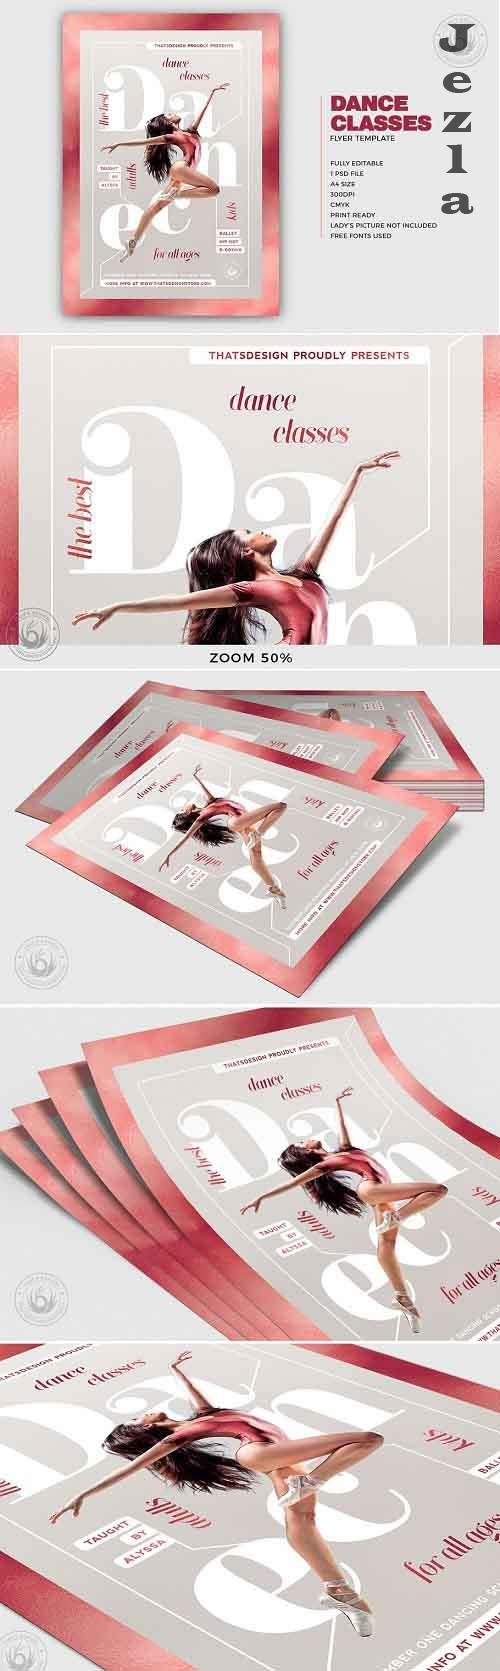 Dance Classes Flyer Template V4 - 5114647